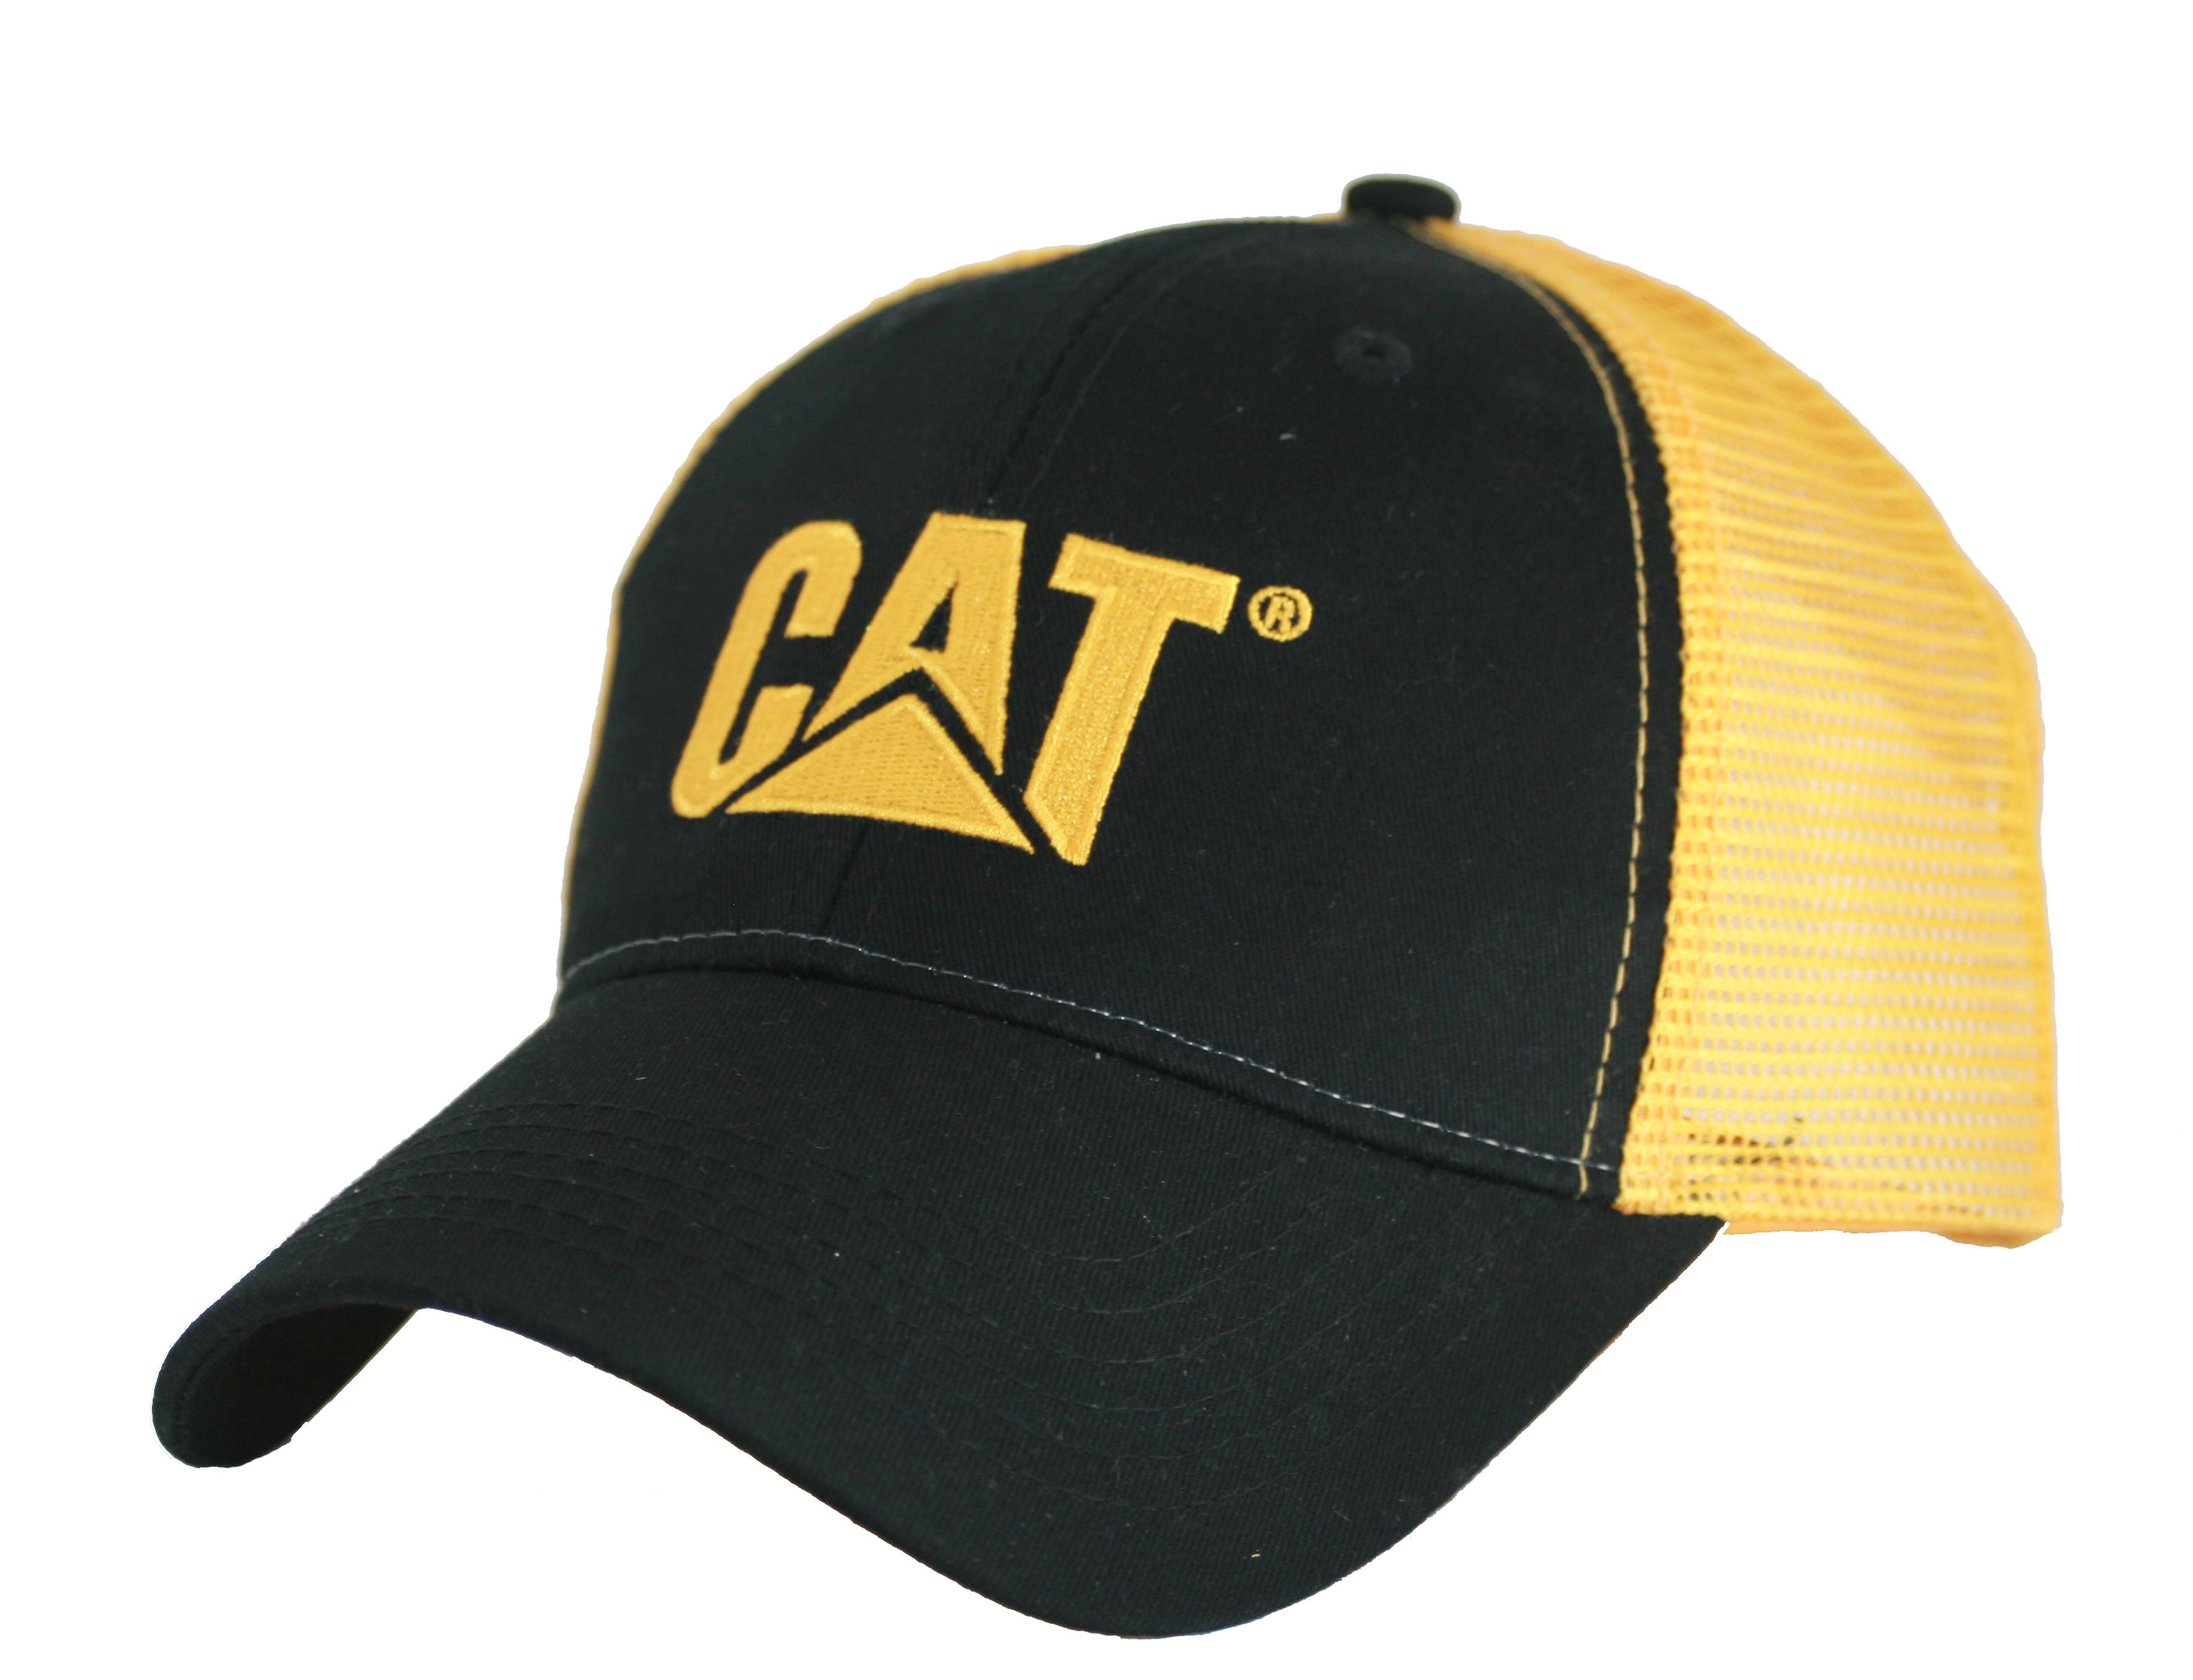 Caterpillar Merchandise Cat Merchandise Cat Caps